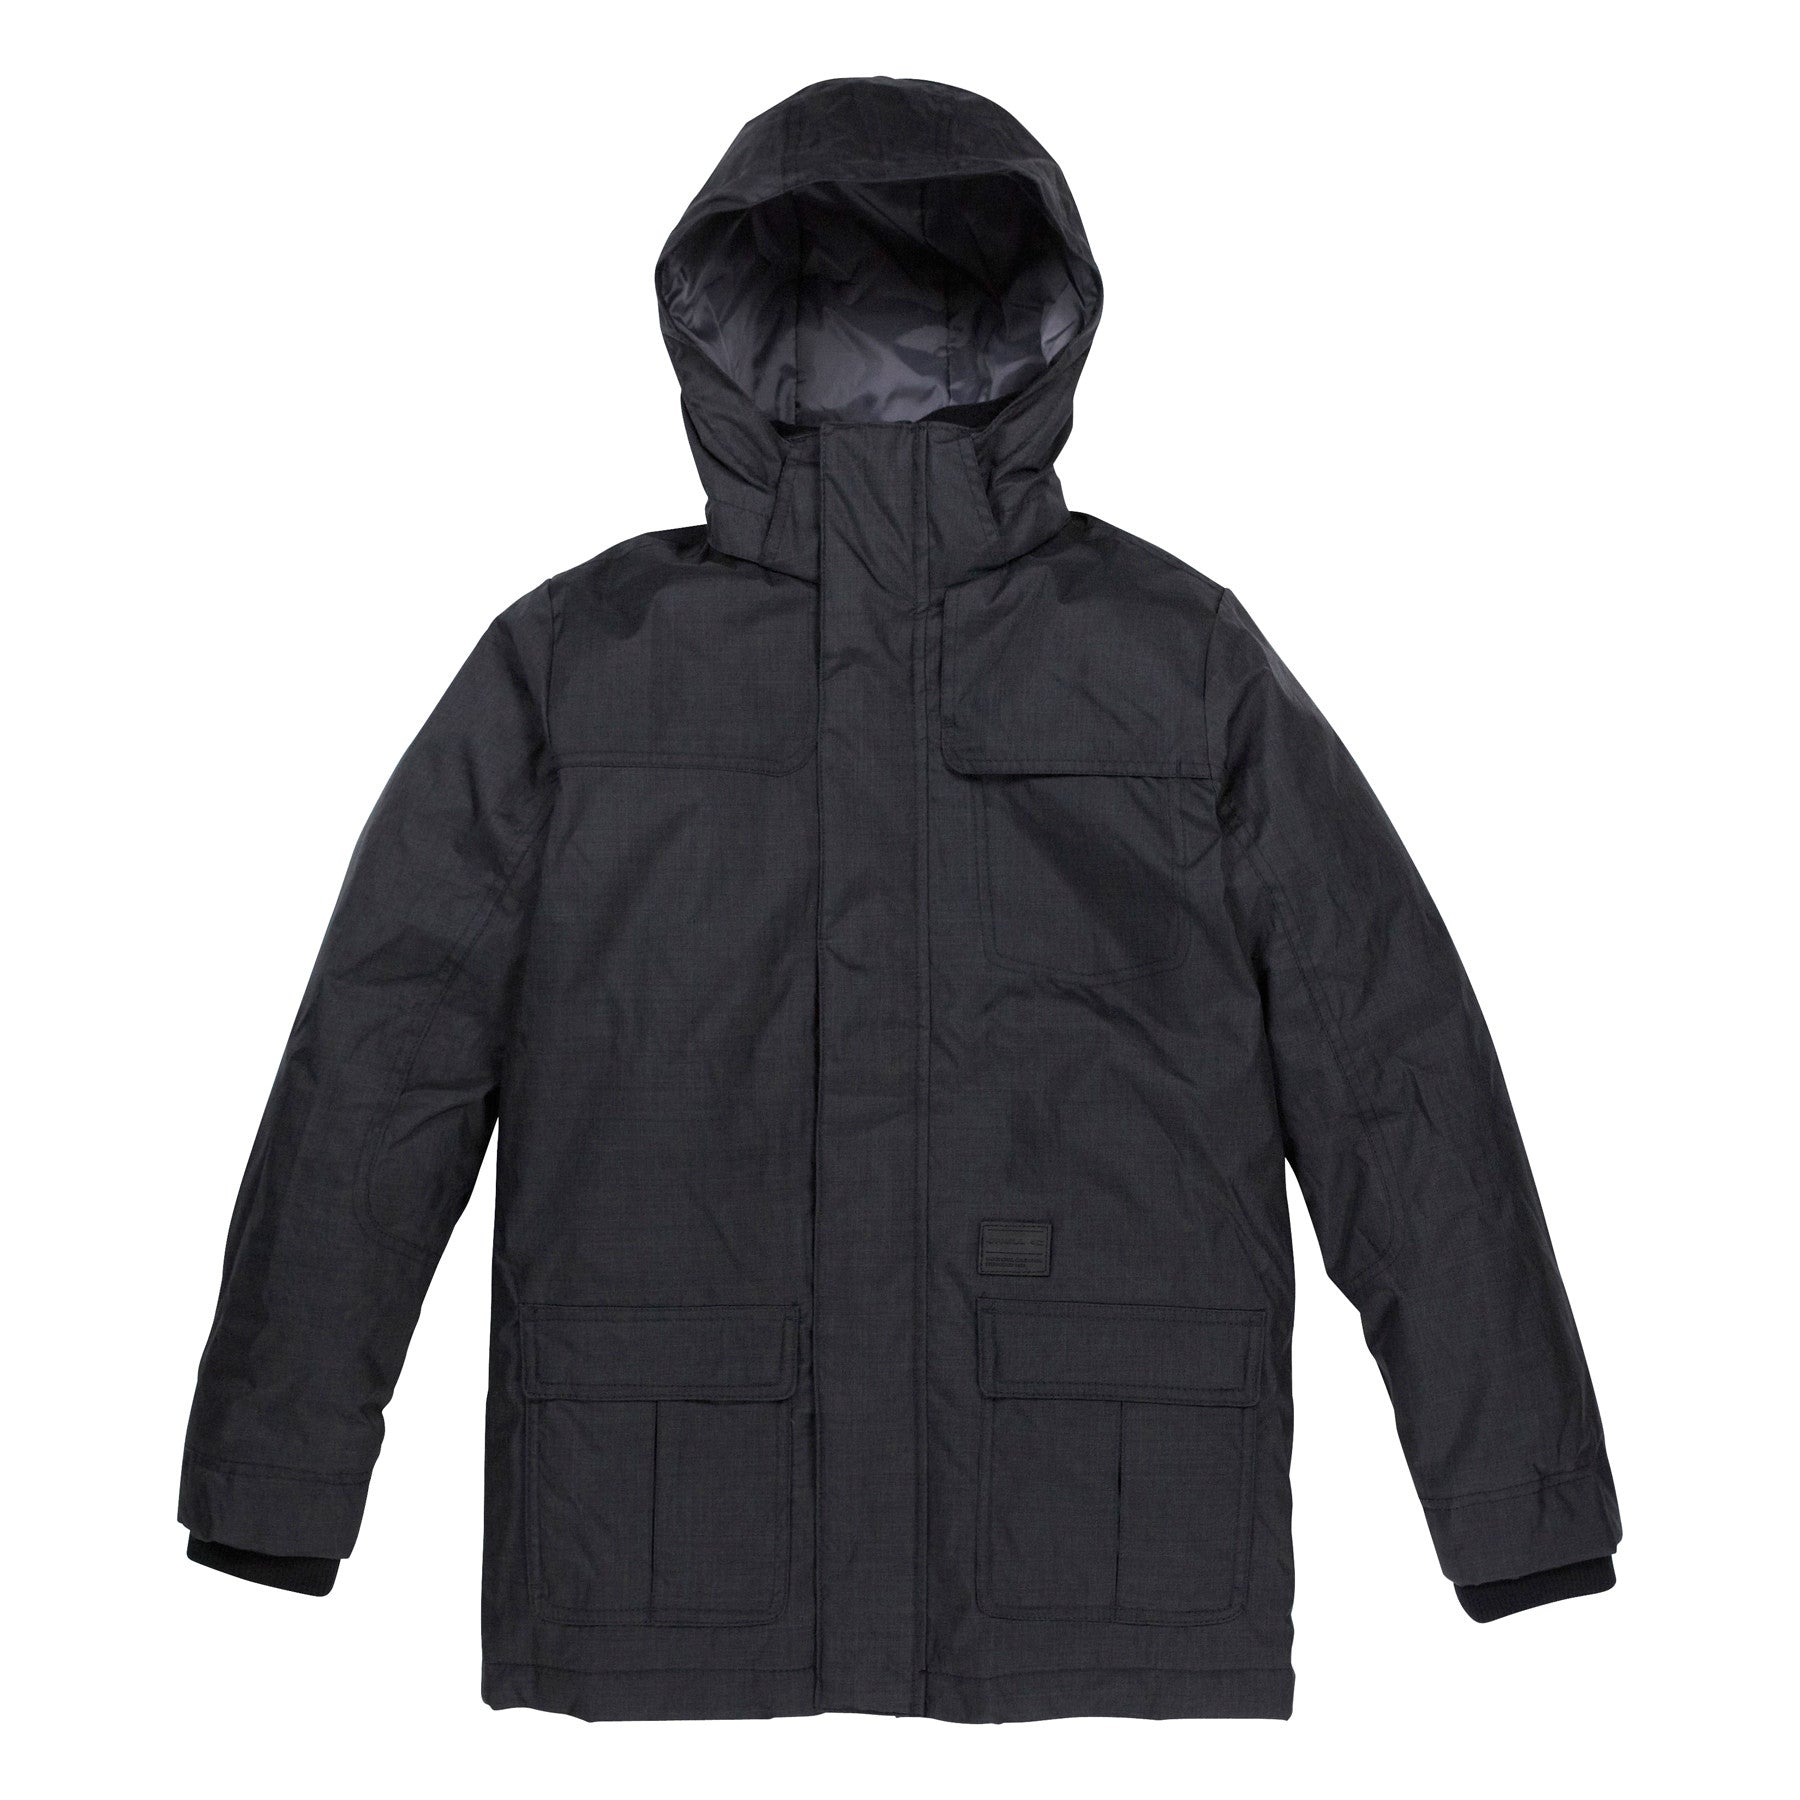 Kids Rockaway jacket Black Out - Stoked Boardshop  - 1